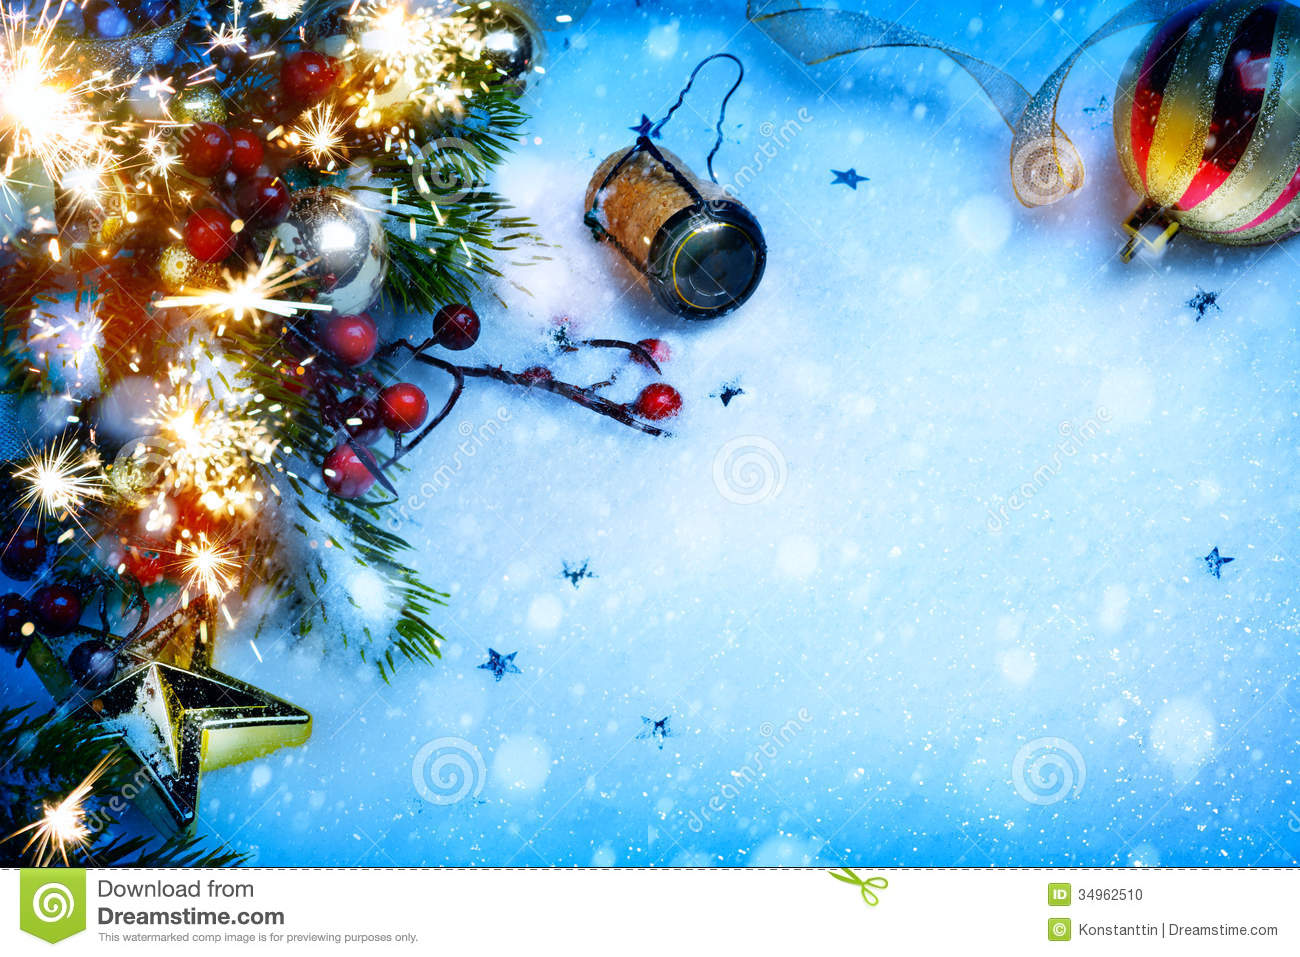 Art Christmas And New Year Party Backgrounds Stock Photo - Image of ...